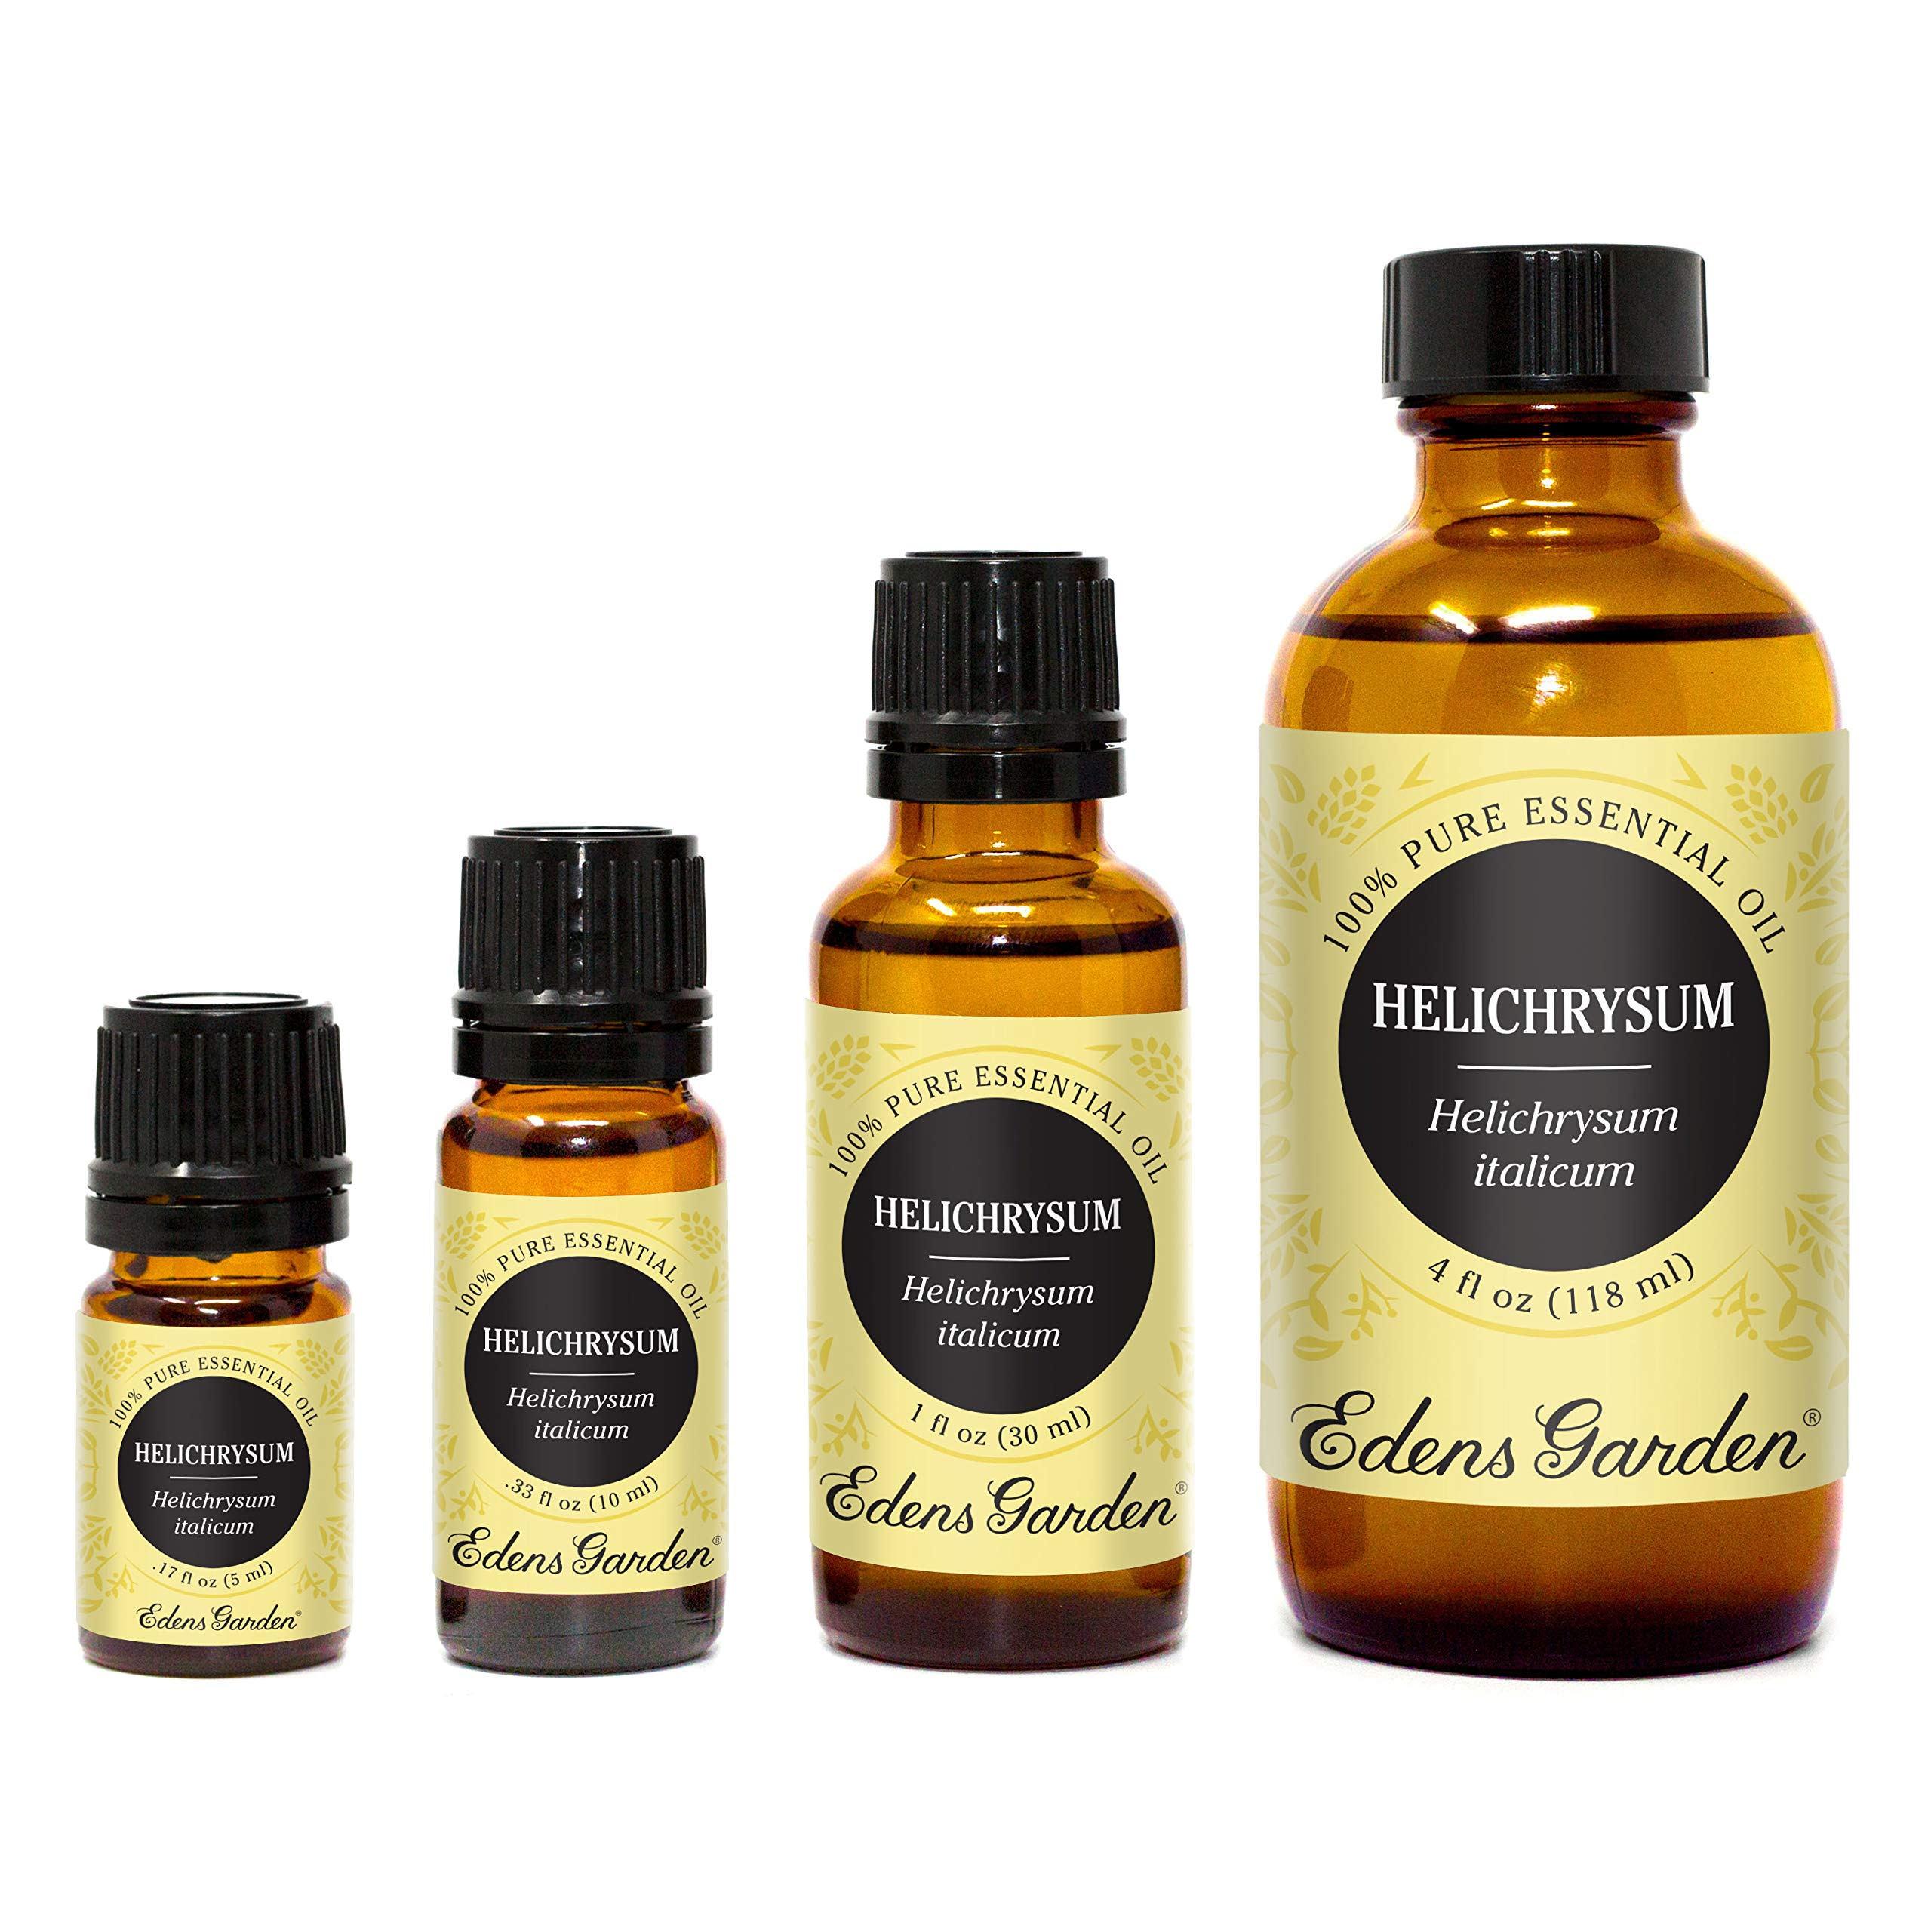 Edens Garden Helichrysum Italicum Essential Oil, 100% Pure Therapeutic Grade (Highest Quality Aromatherapy Oils- Eczema & Skin Care), 30 ml by Edens Garden